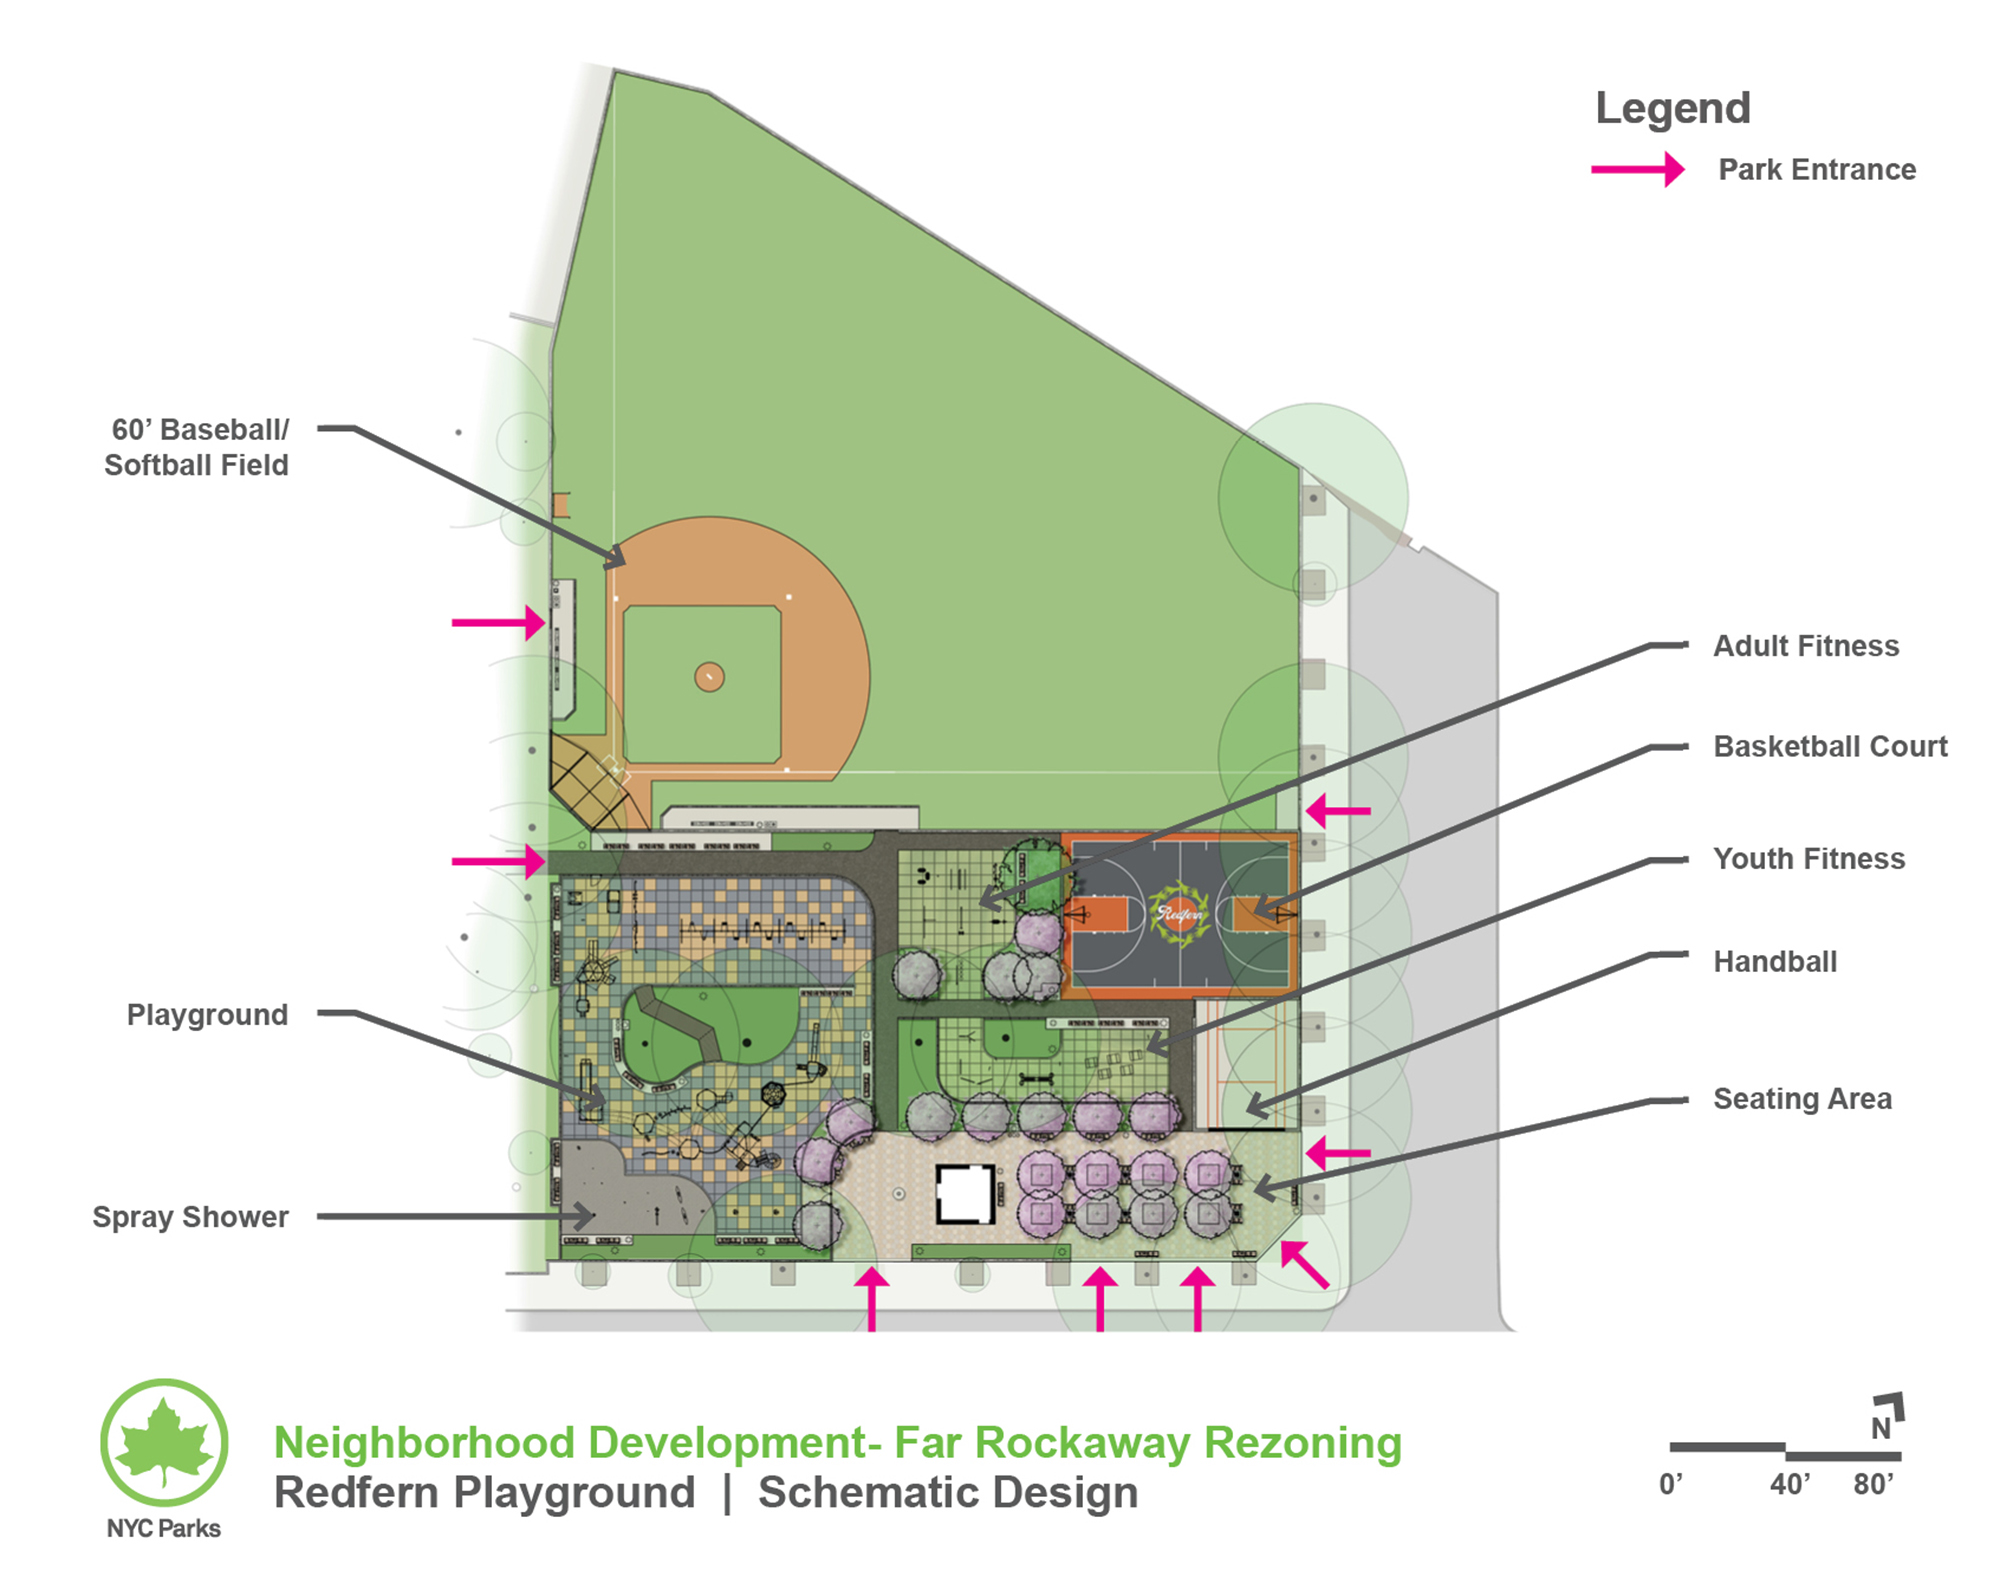 Design of Redfern Playground Reconstruction